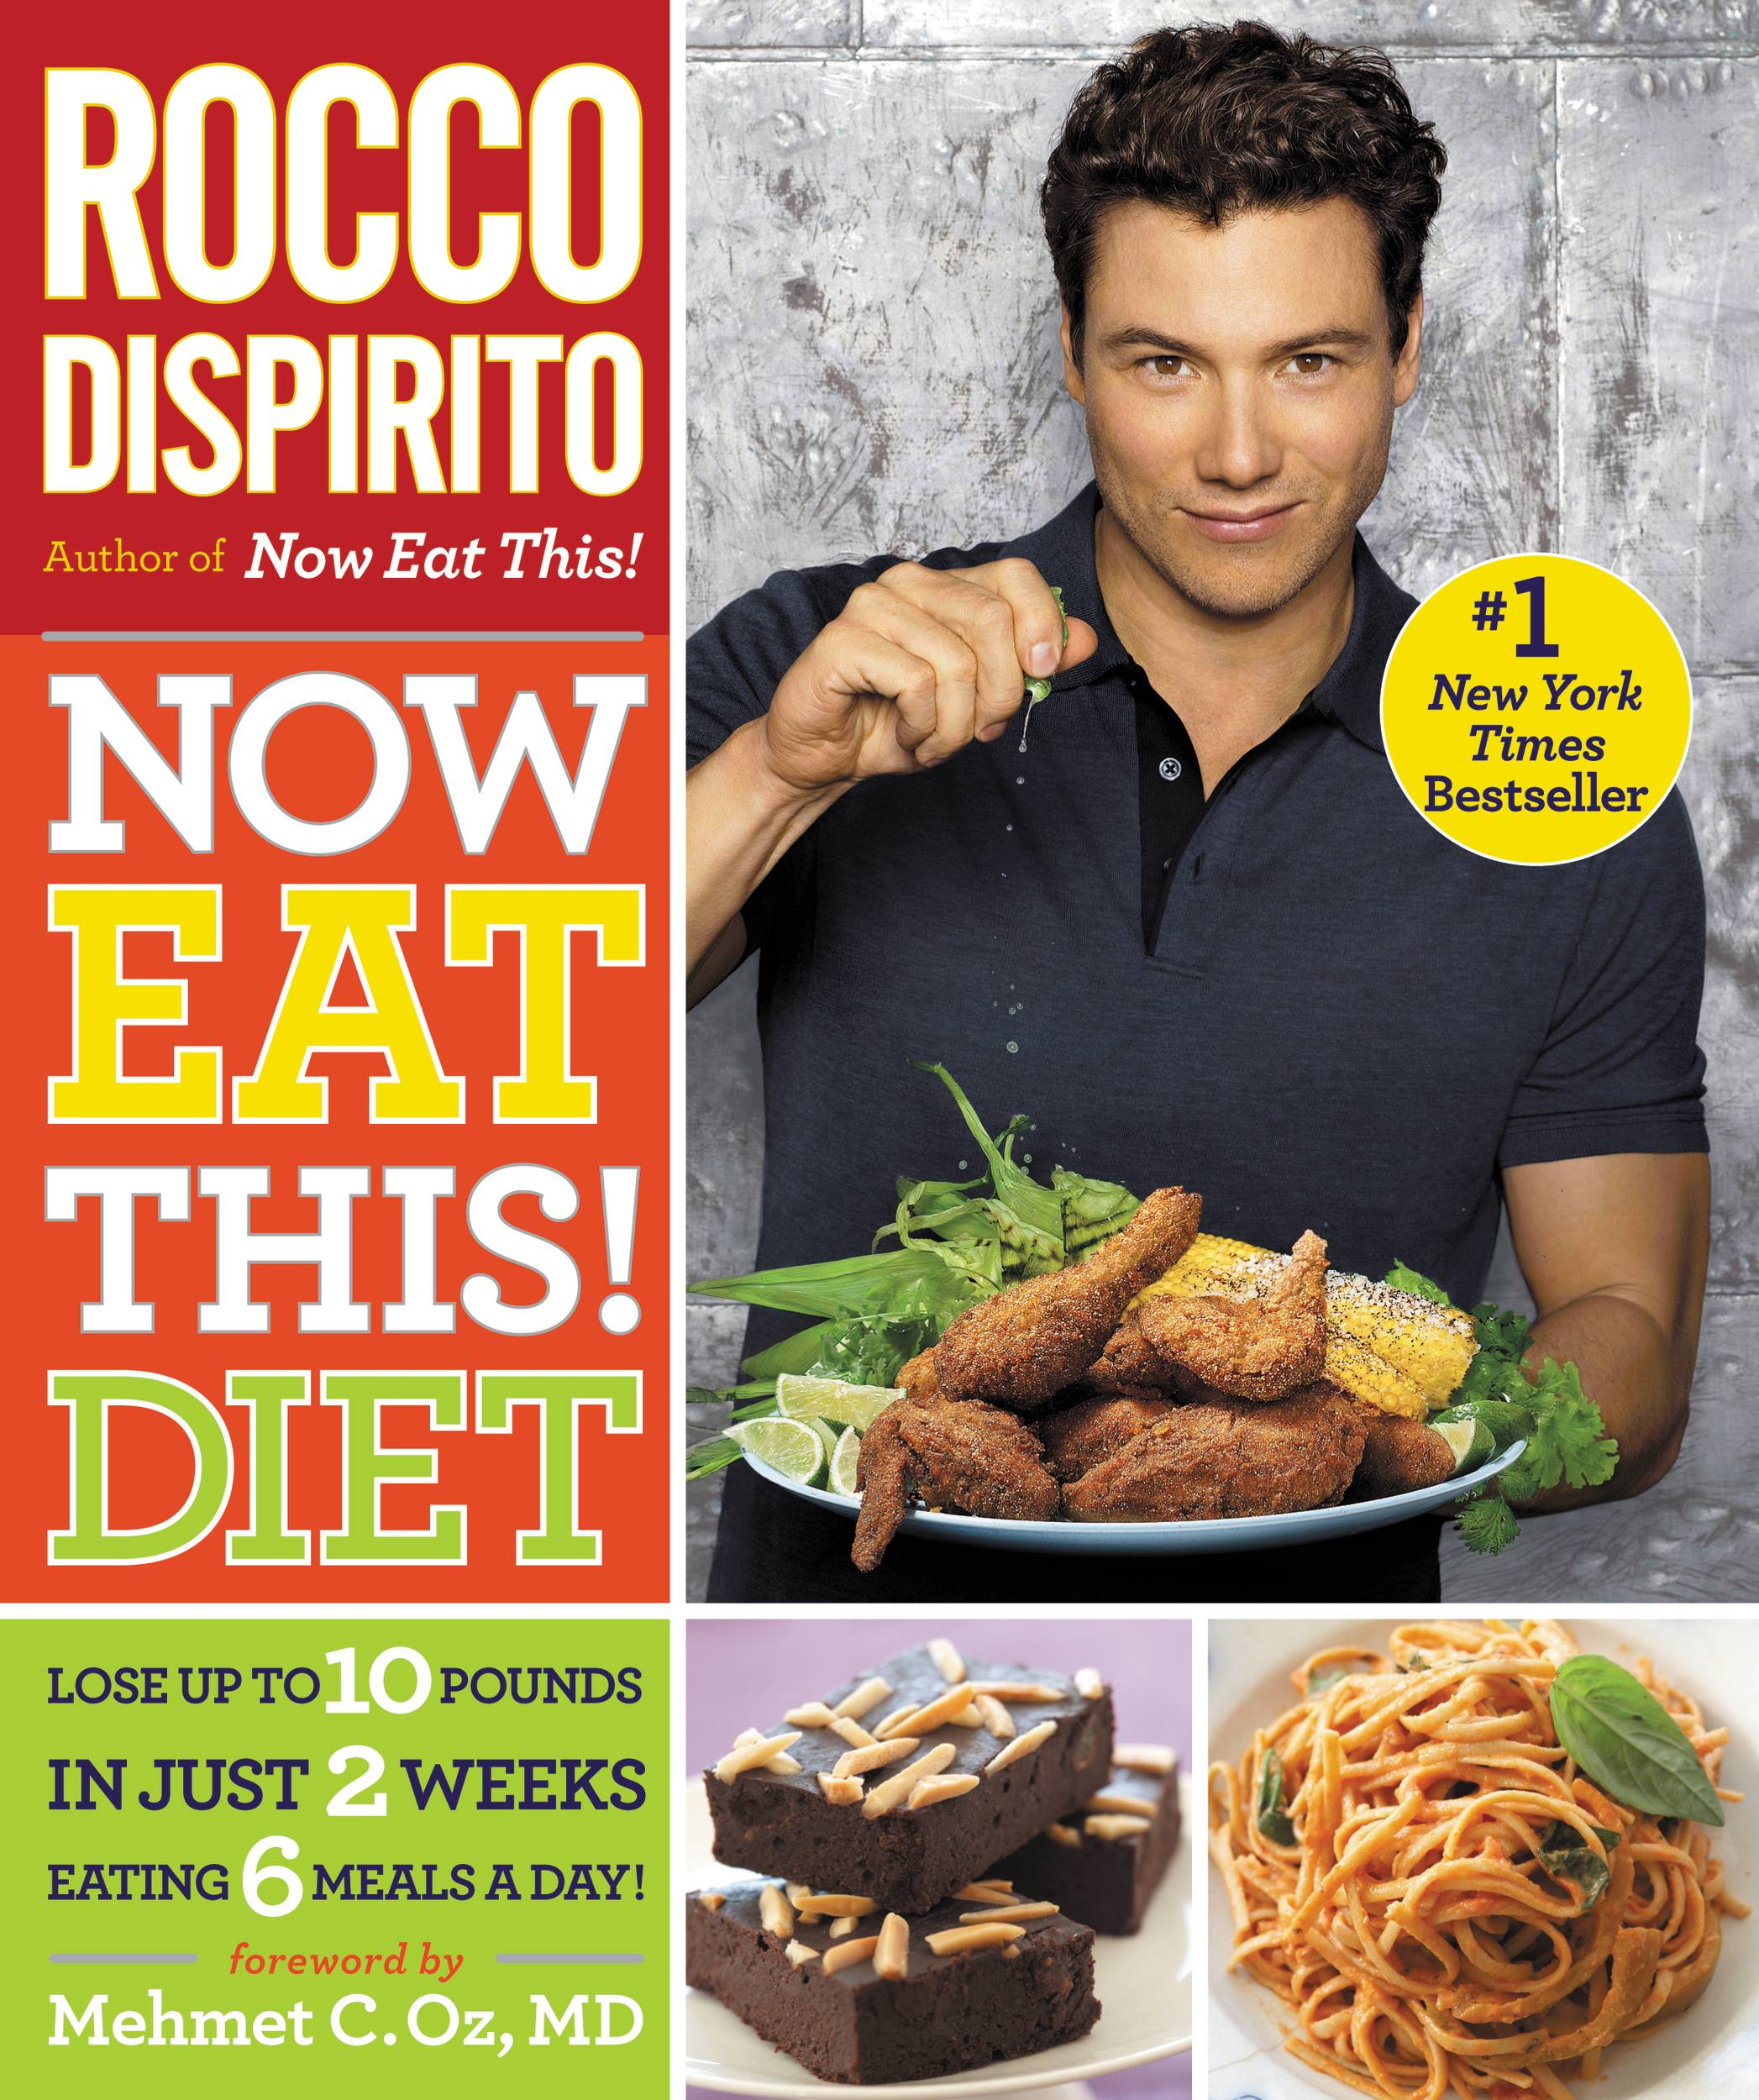 Now Eat This! Diet By: Rocco DiSpirito